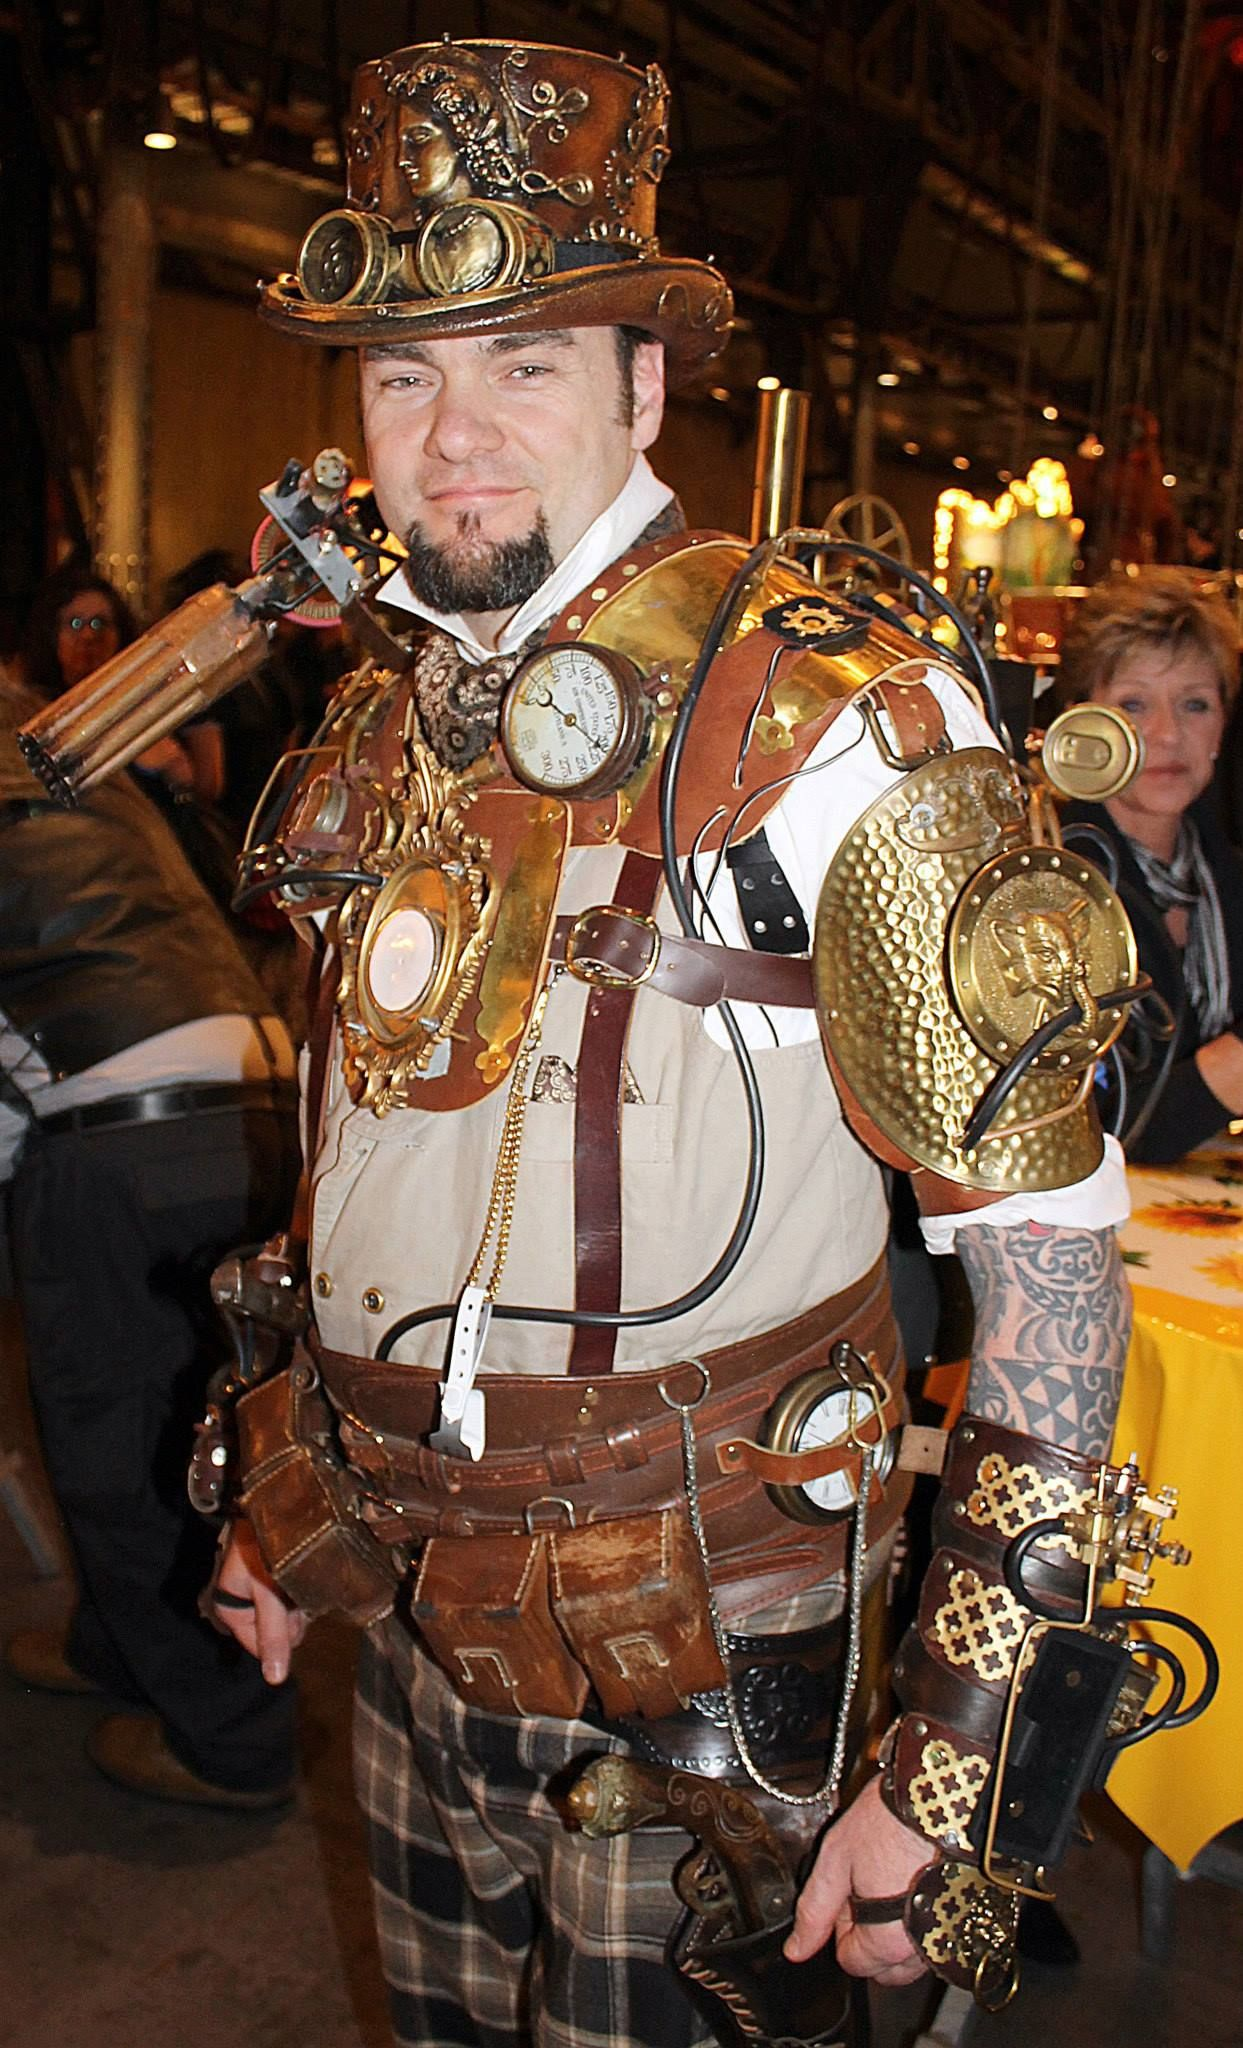 Steampunk Ideas Great Ideas On His Outfit Steampunk In 2019 Steampunk